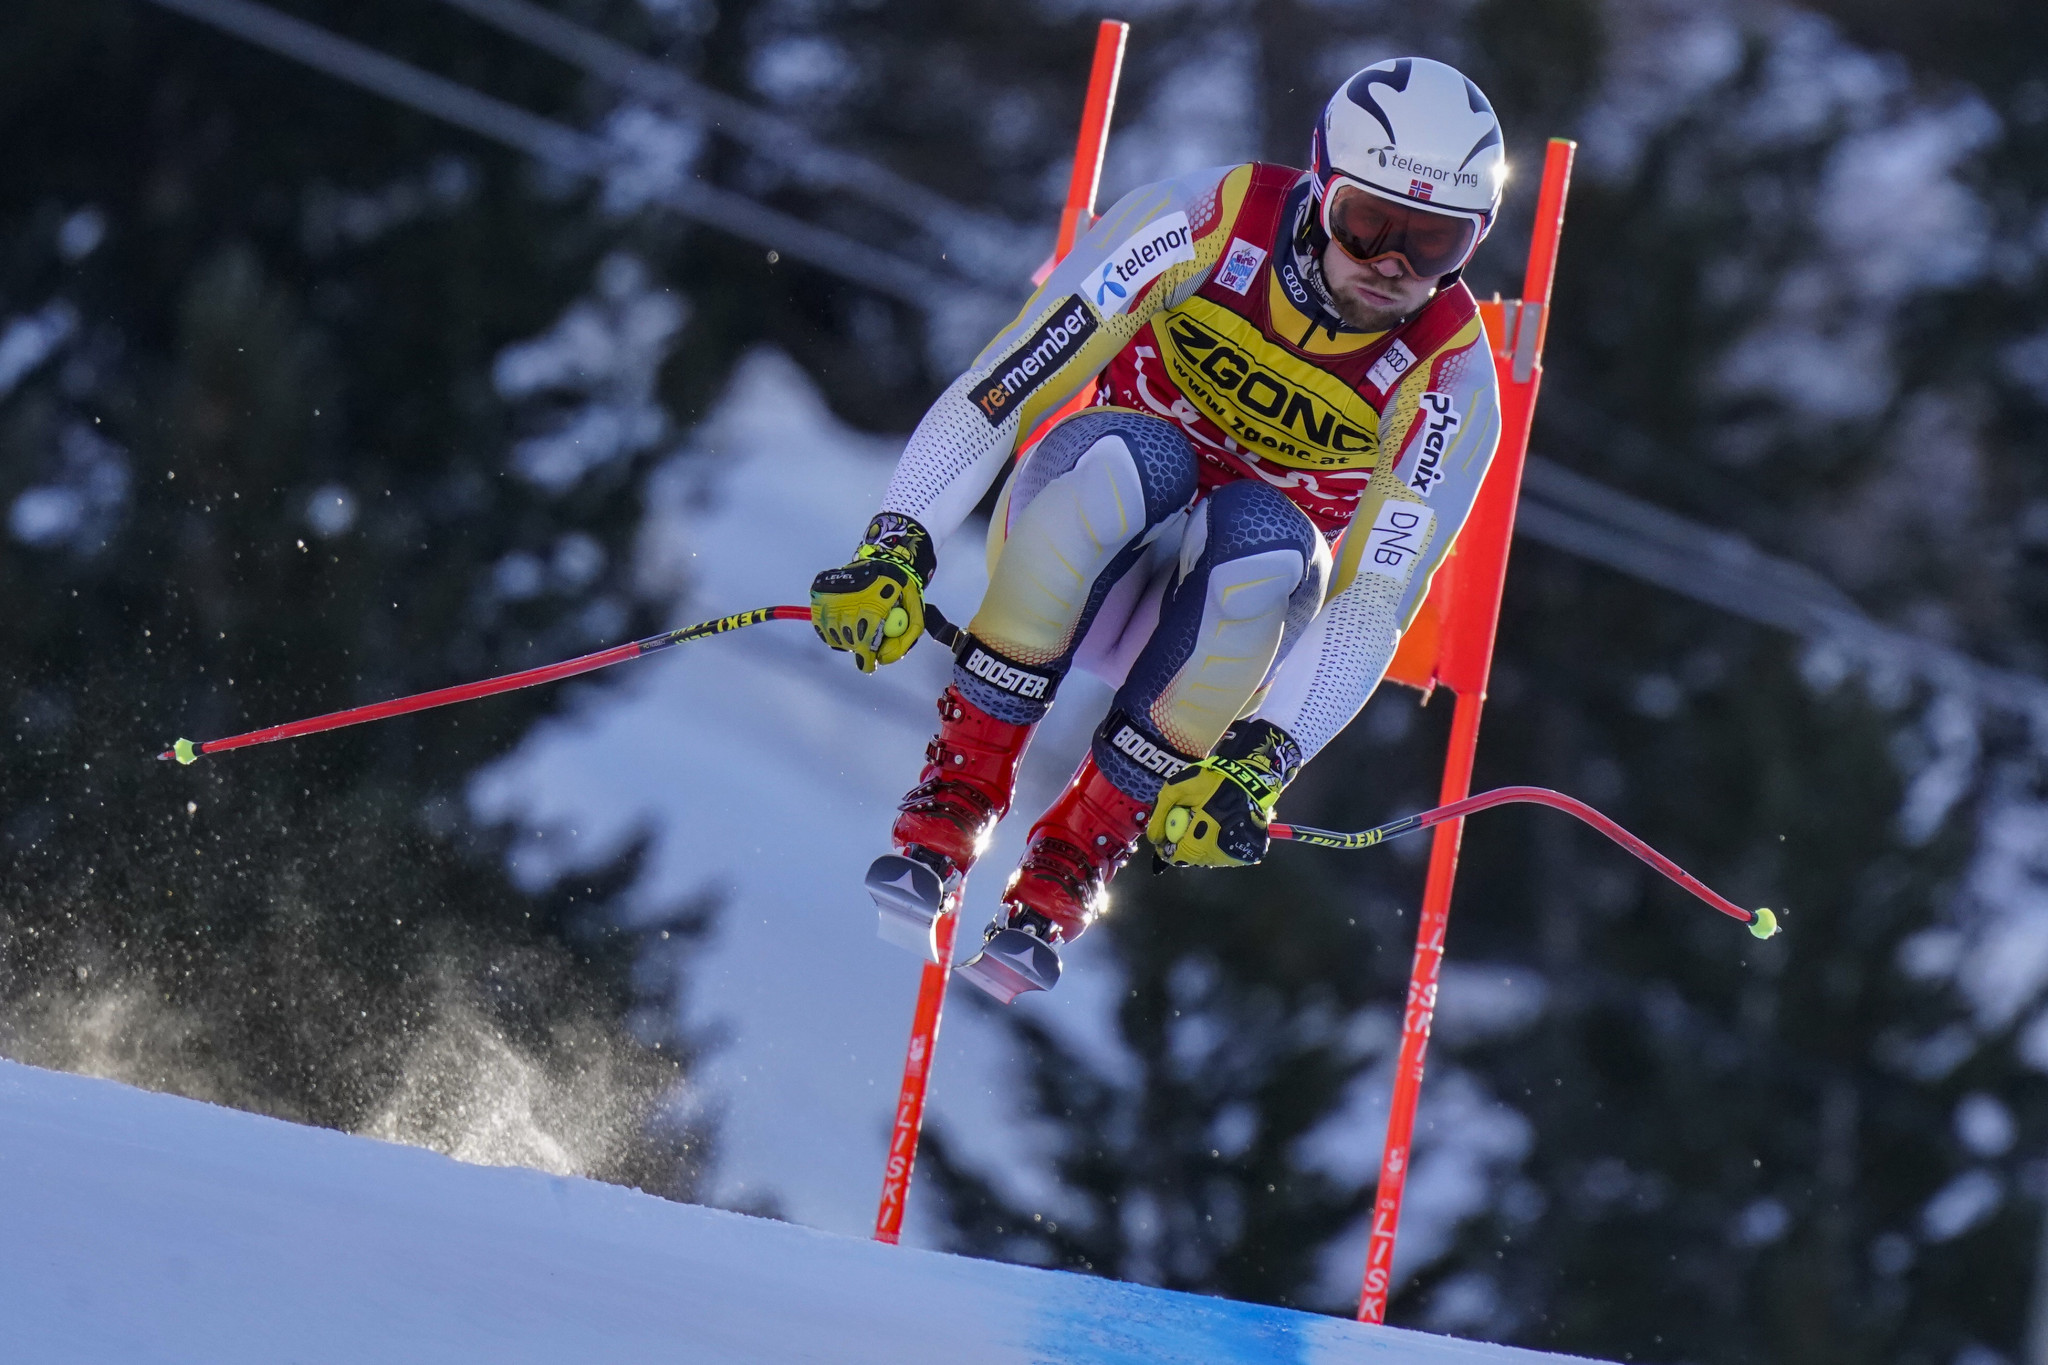 Aleksander Aamodt Kilde and his competition were able to complete training runs yesterday ©Getty Images